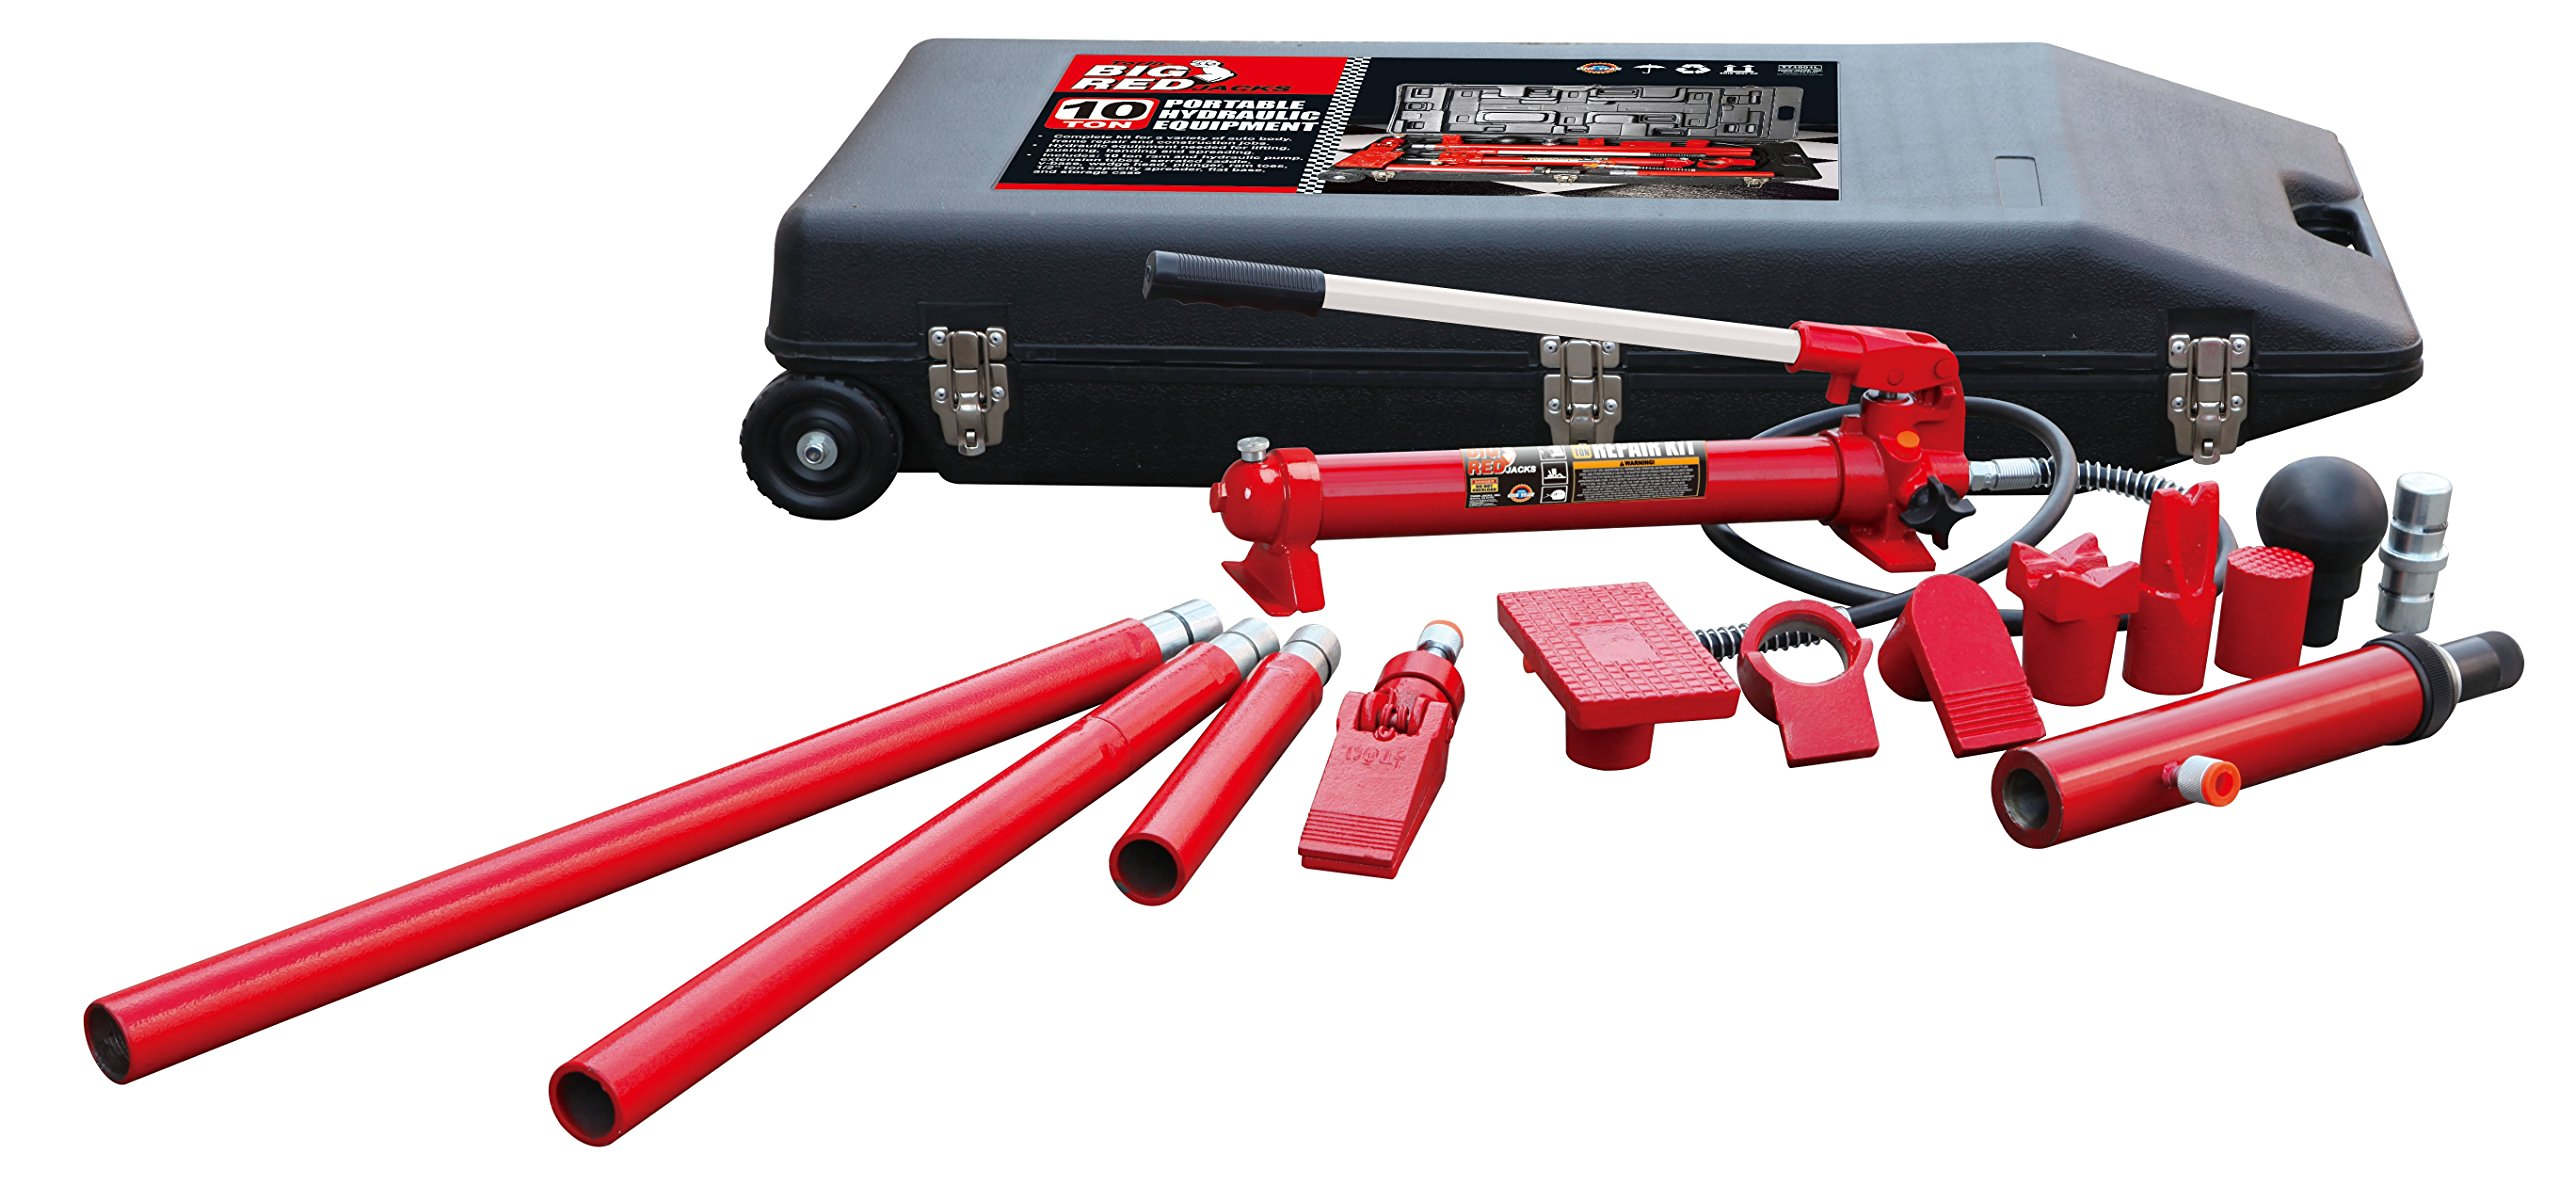 Torin Big Red Portable Hydraulic Ram: Auto Body Frame Repair Kit with Rolling Case, 10 Ton Capacity